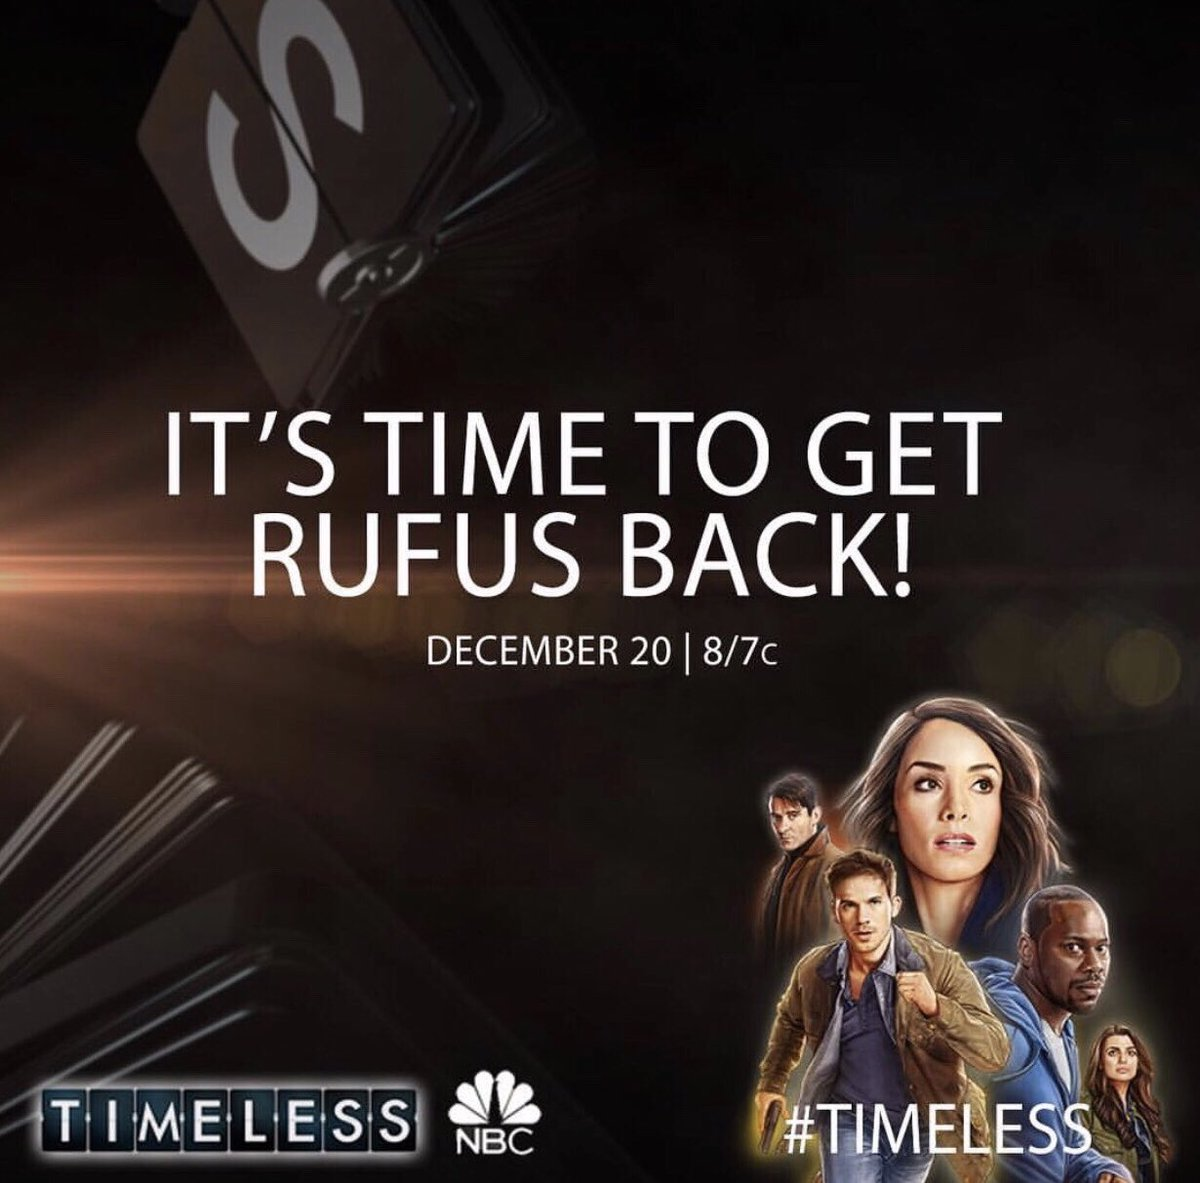 See you Thursday, December 20th at 8 pm NBC for the #TimelessMovie ????????????????????????♂️⏰!#Timeless #SaveRufus #ClockBlockers https://t.co/5IIWsu2qpM